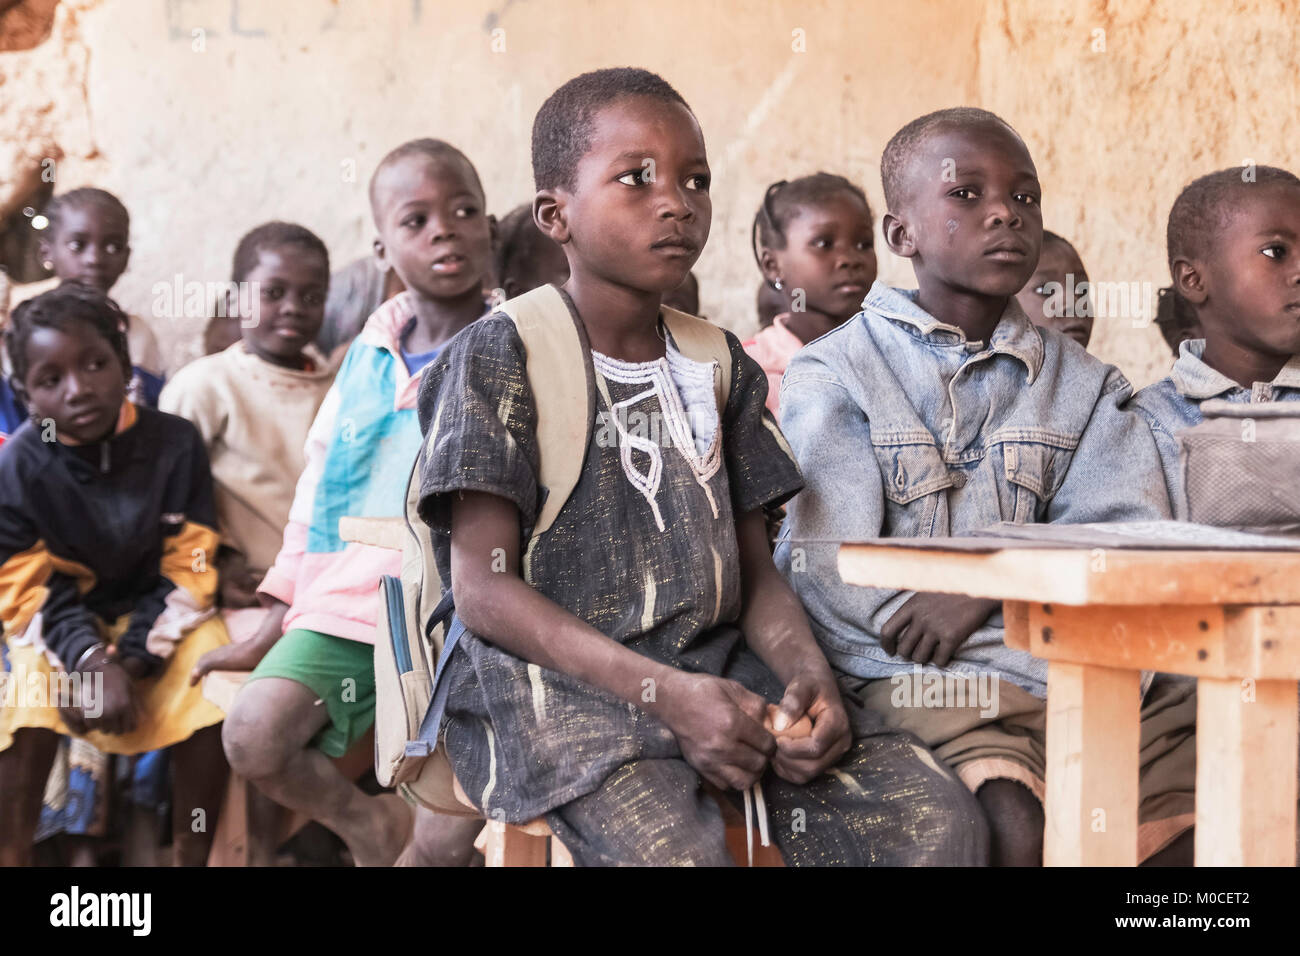 malawi chairs johannesburg wooden beach african school kids stock photos and